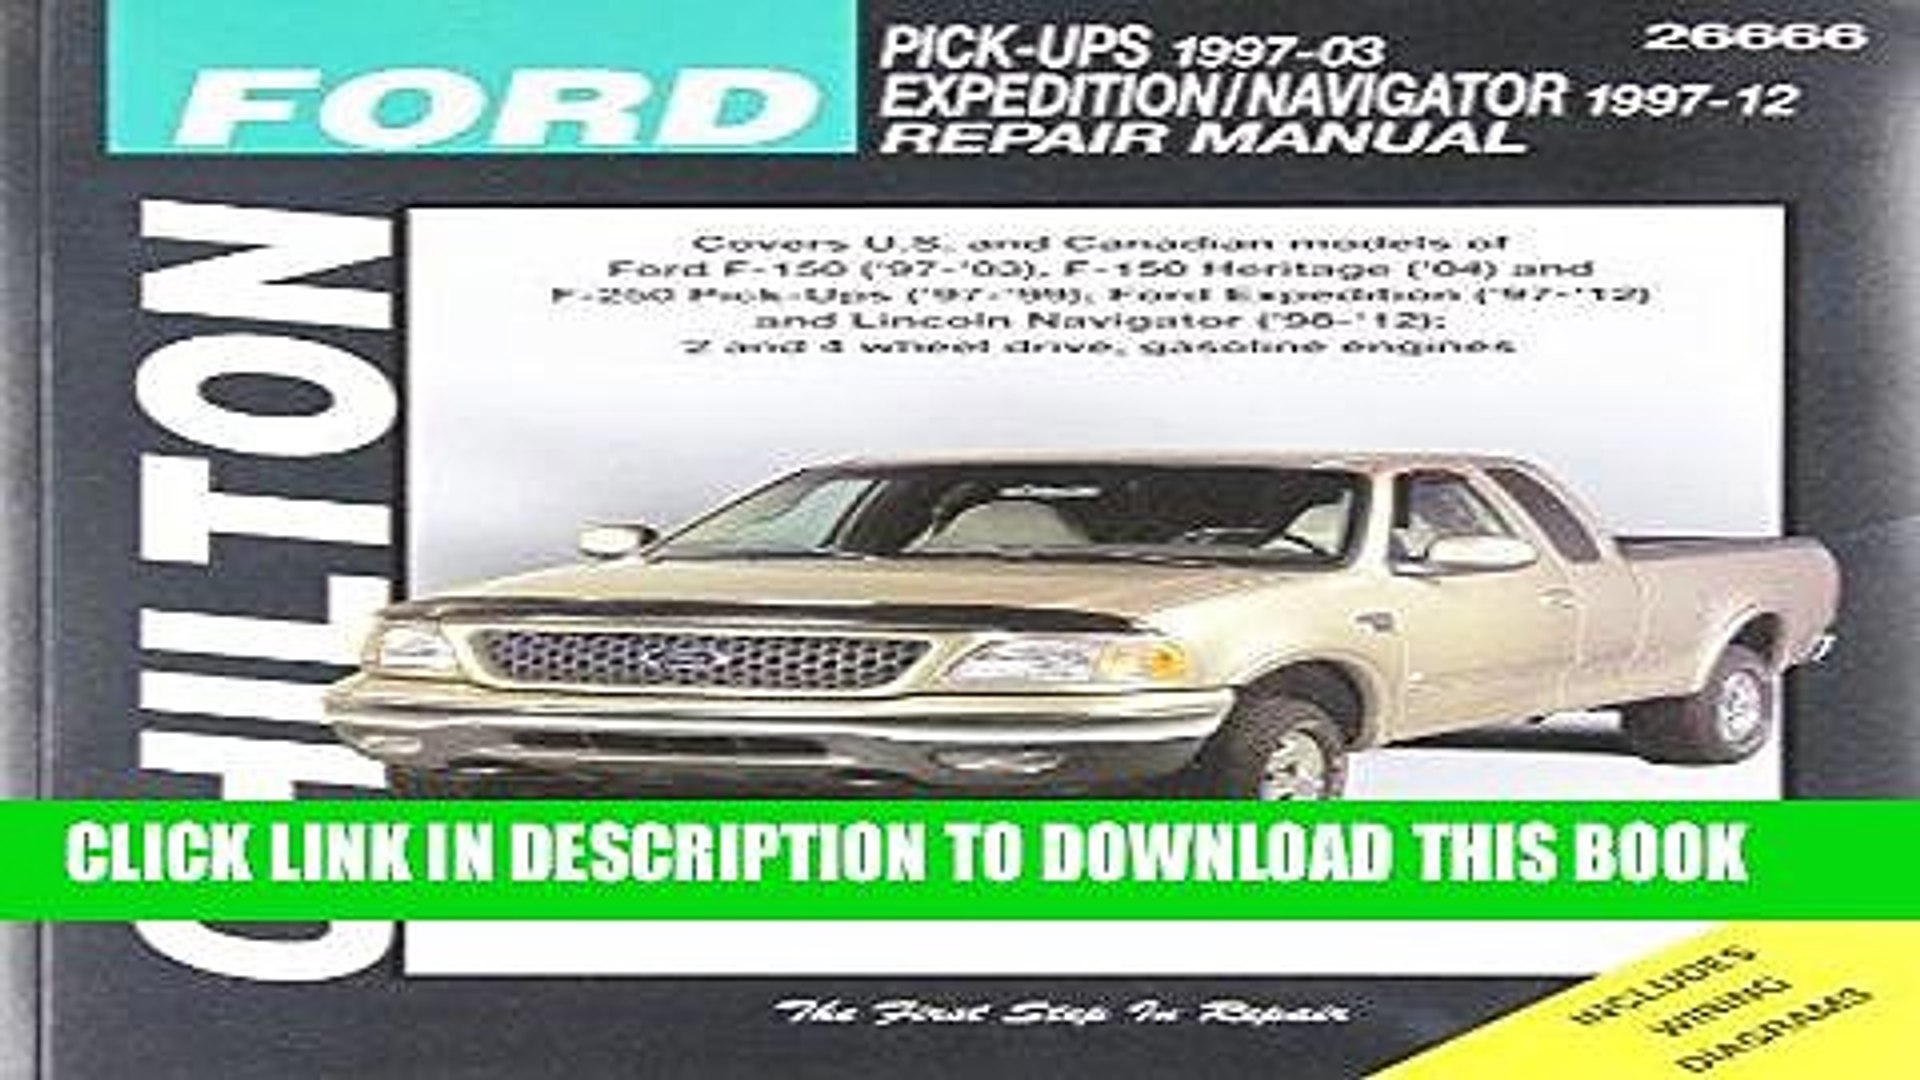 [Free Read] Chilton Total Car Care Ford F-150 ( 97- 03), F-150 Heritage ( 04), F-250 ( 97- 99),